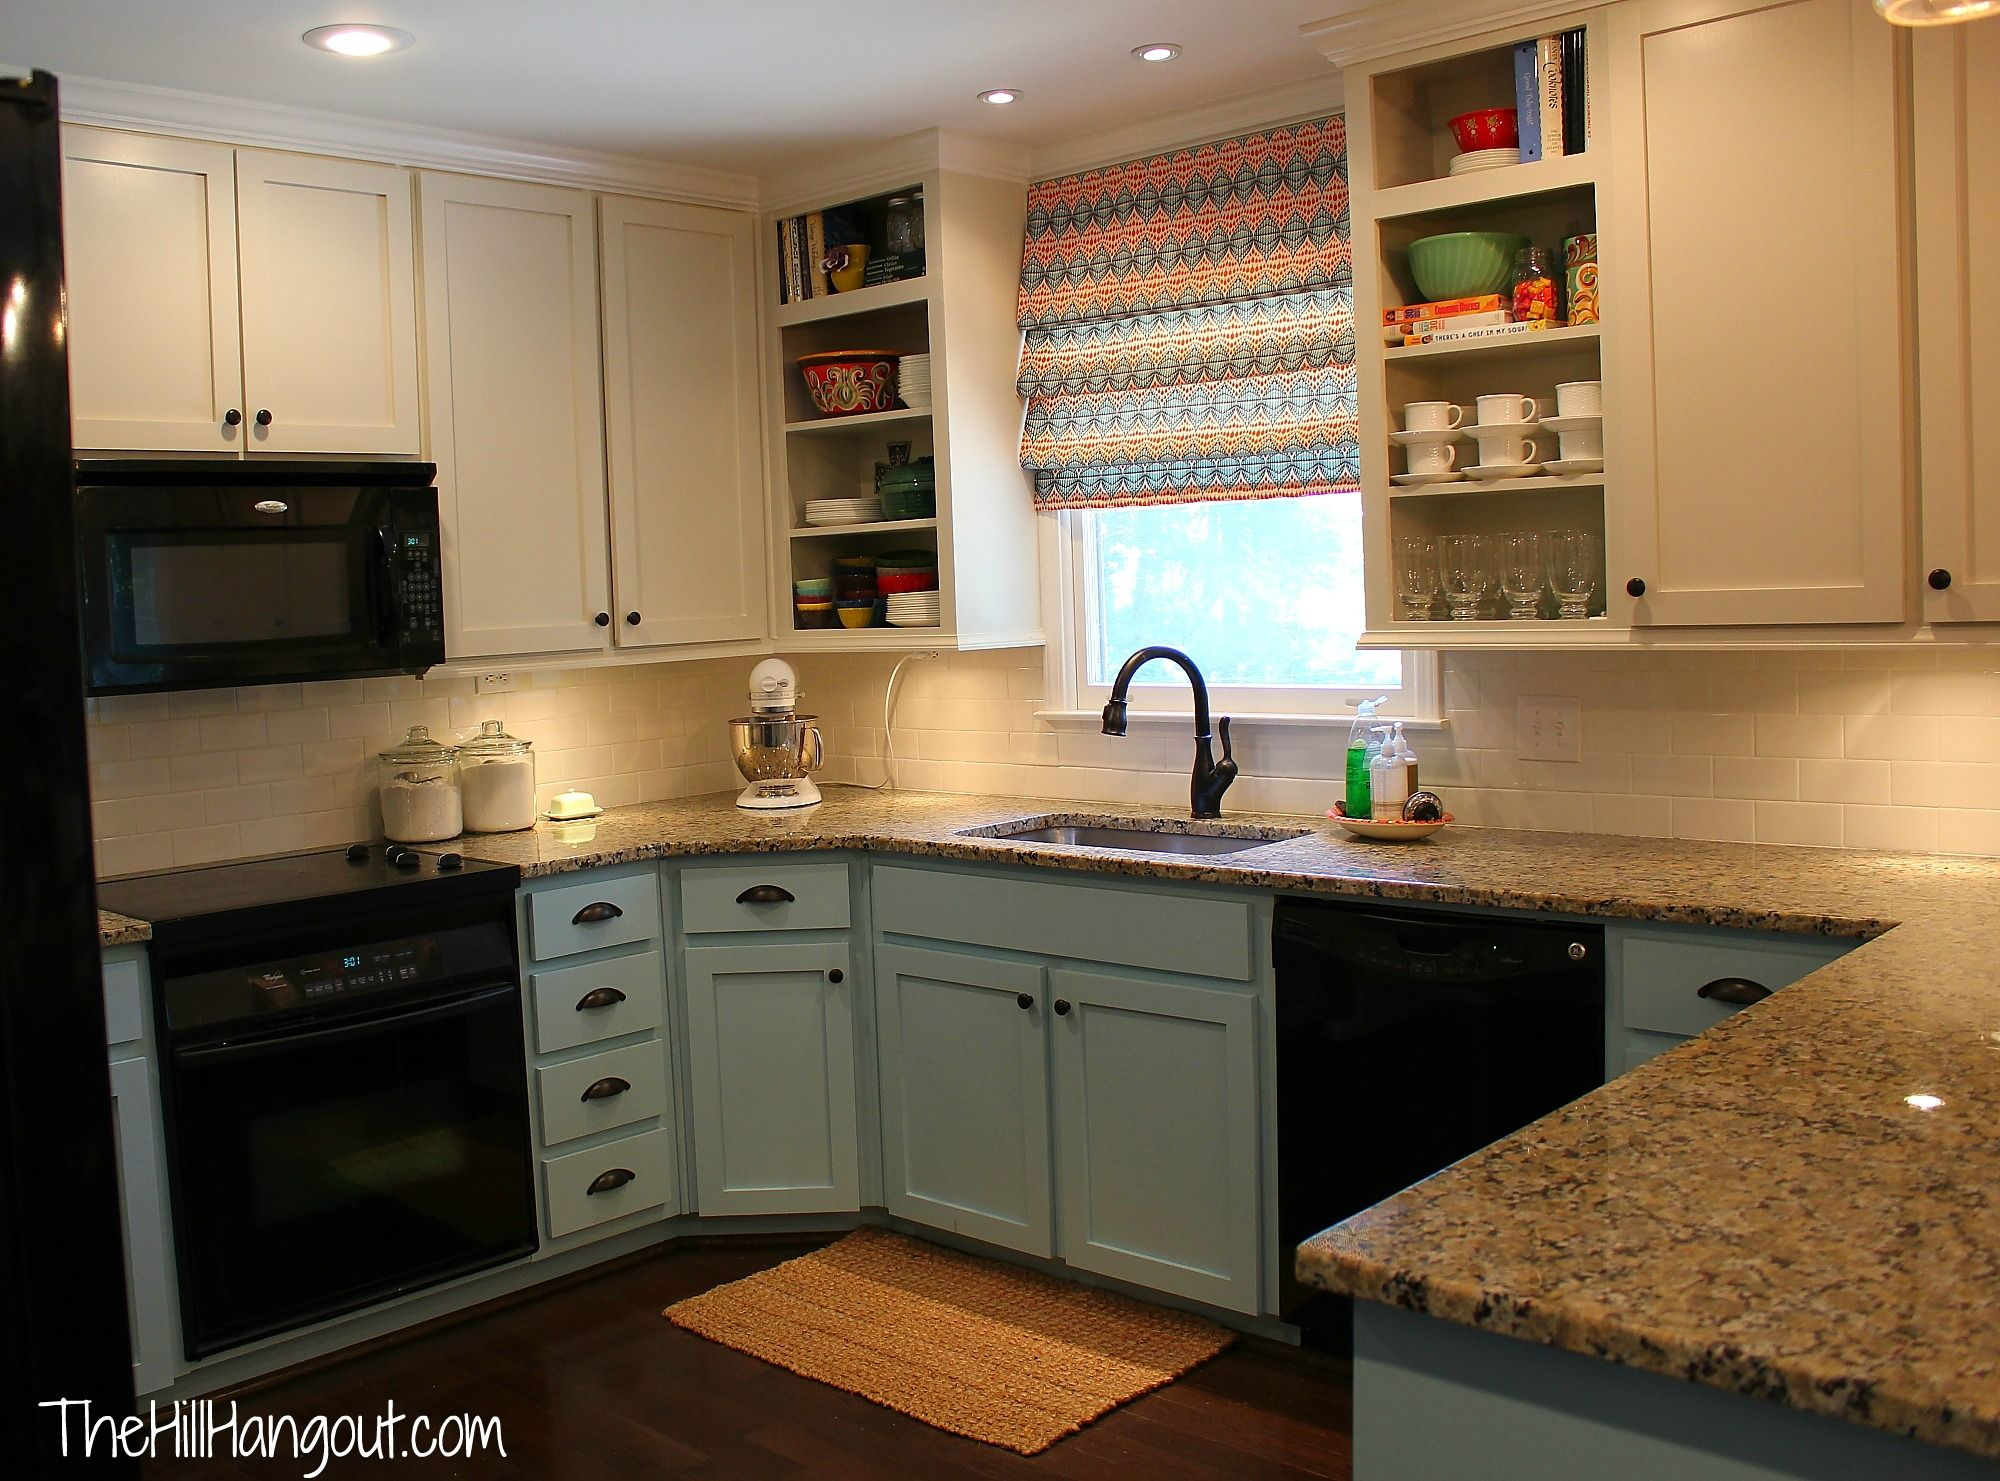 White Top Cabinets Pale Blue Lower Black Appliances Good Temporary Fix